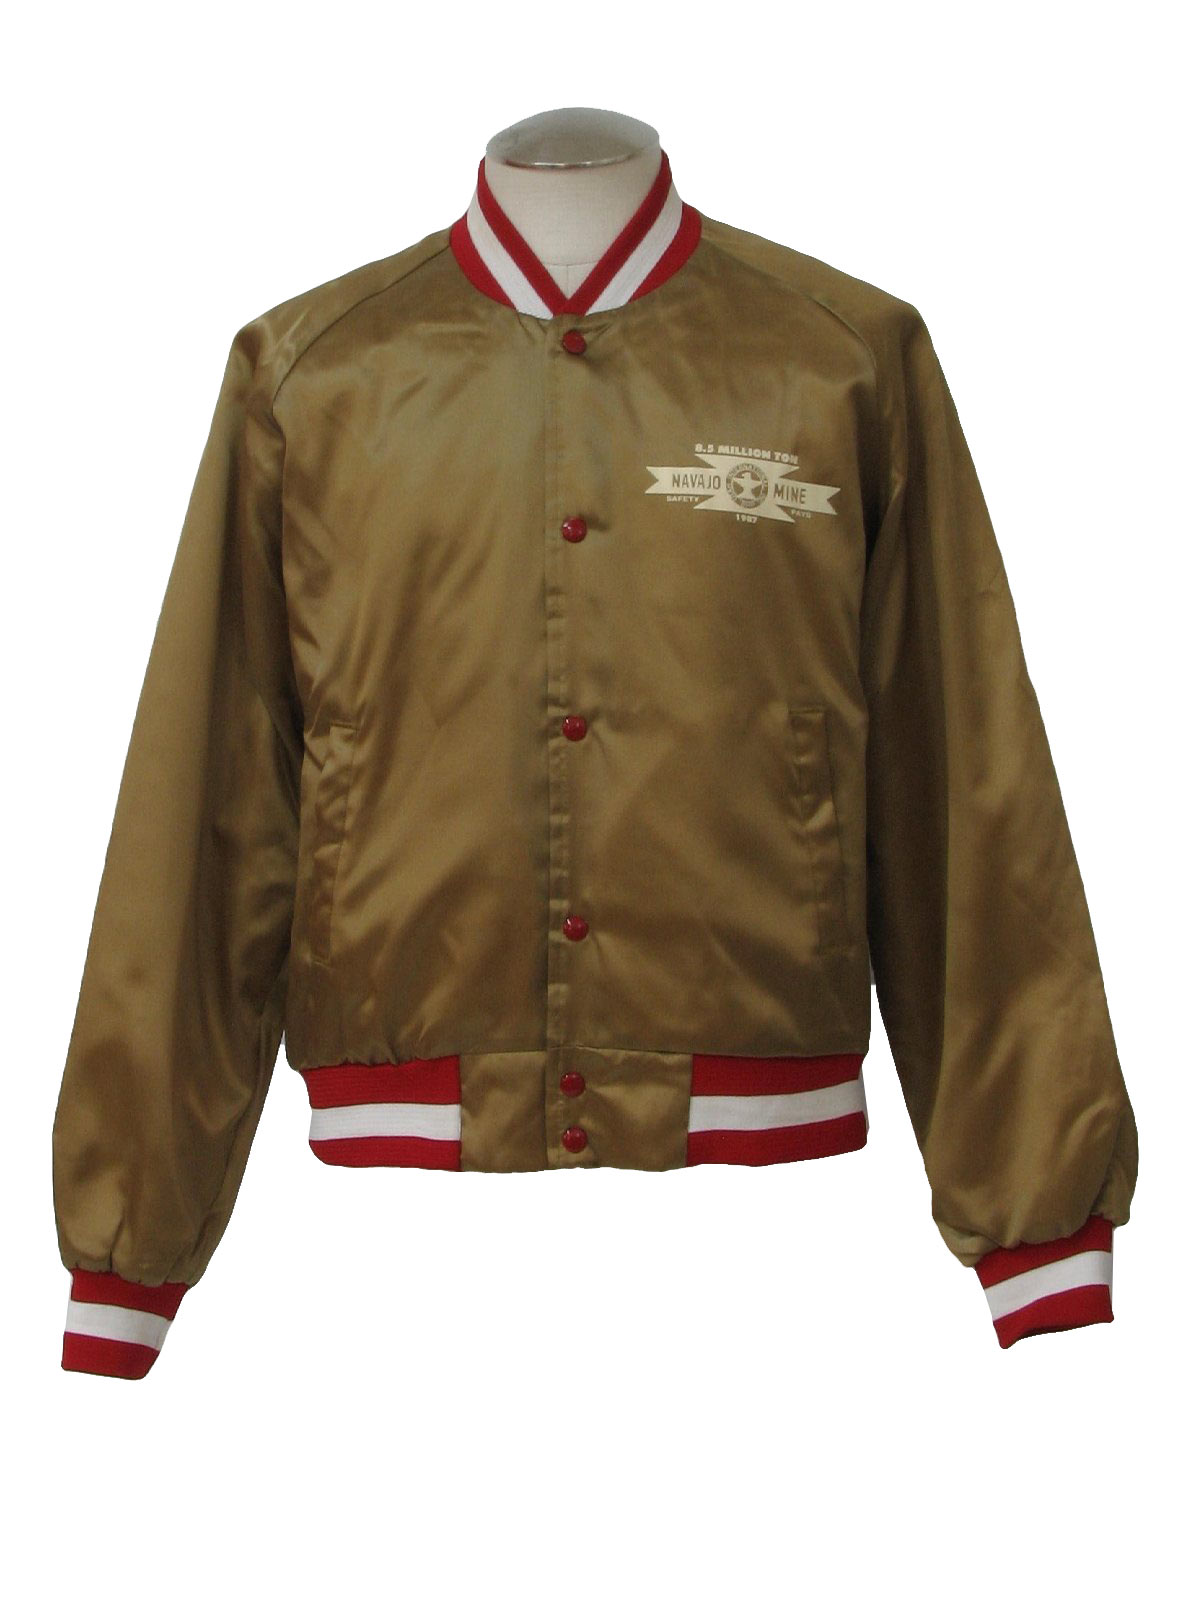 Vintage Chalk Line 80&39s Jacket: 80s -Chalk Line- Mens bronze red